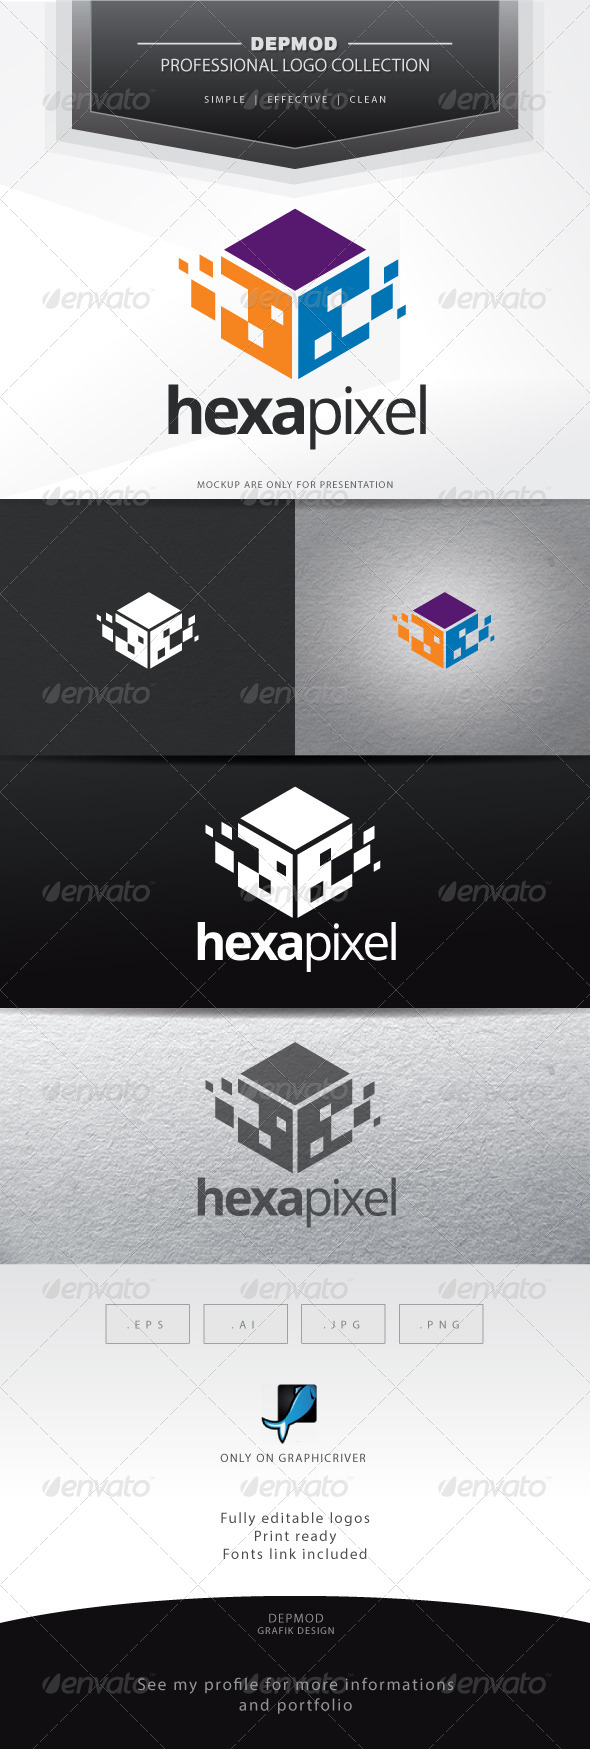 Hexa Pixel Logo - Abstract Logo Templates